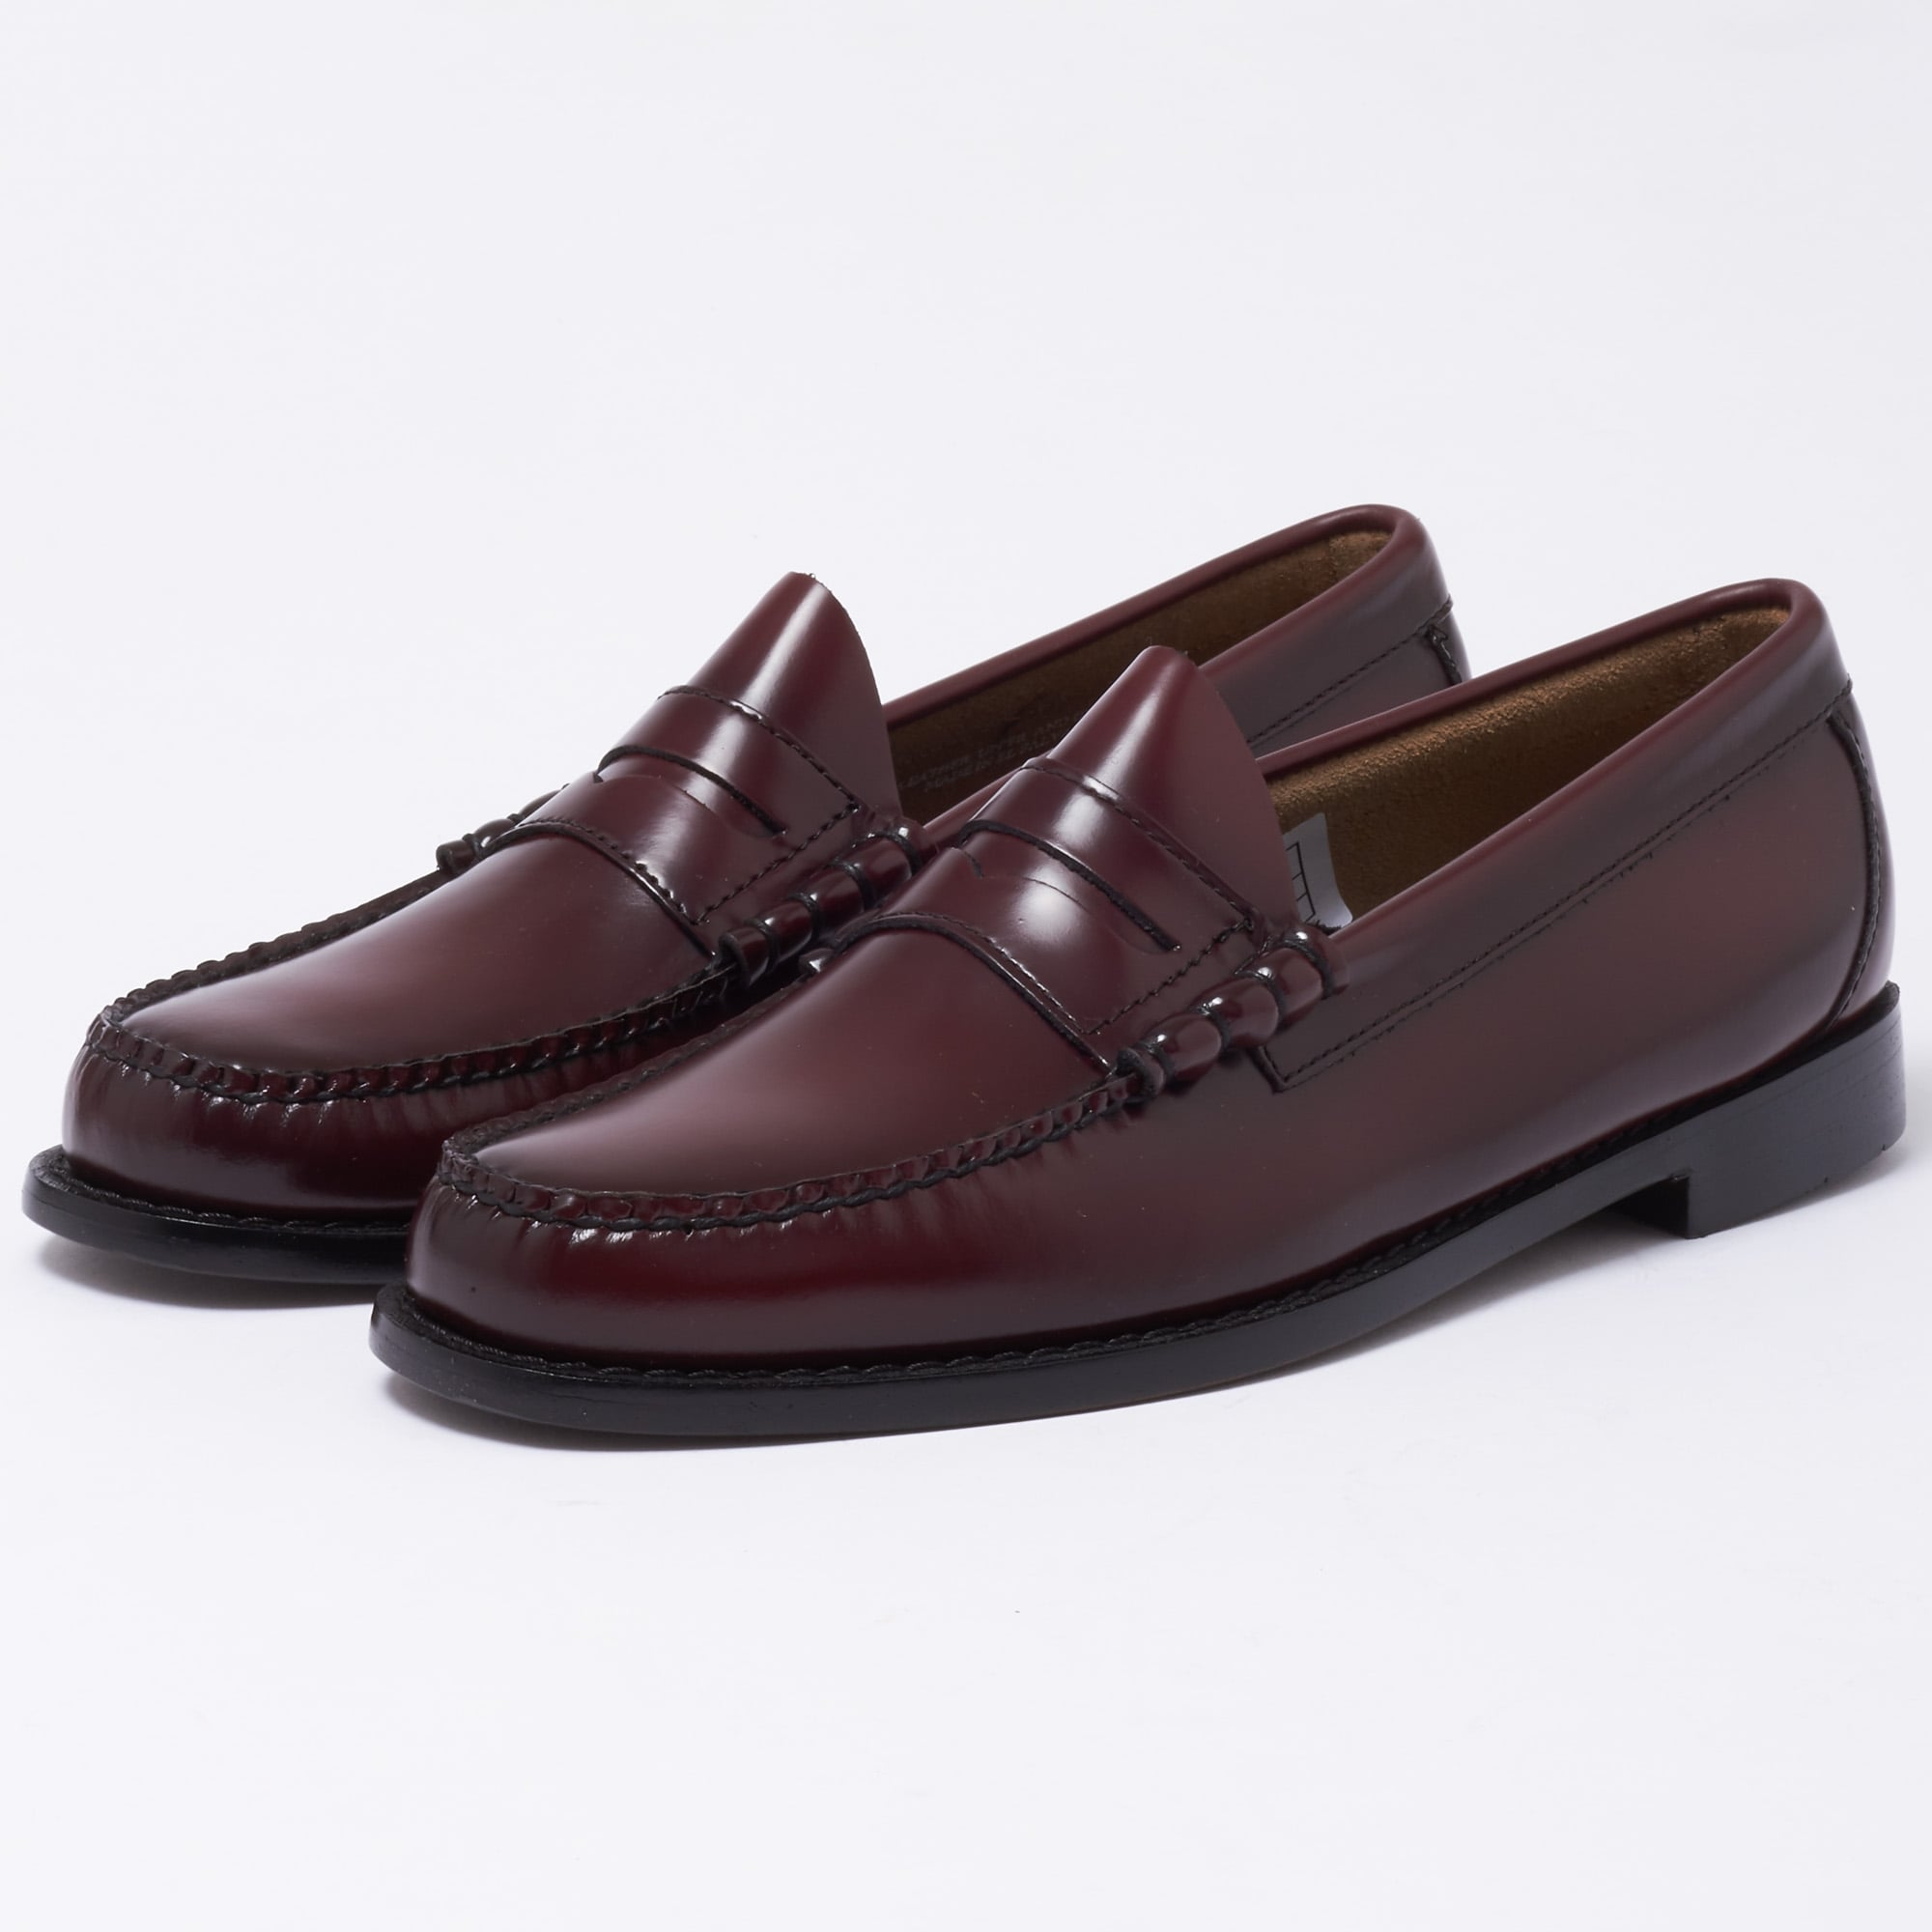 f2f507014d1 Bass Weejuns Larson Moc Penny Loafer